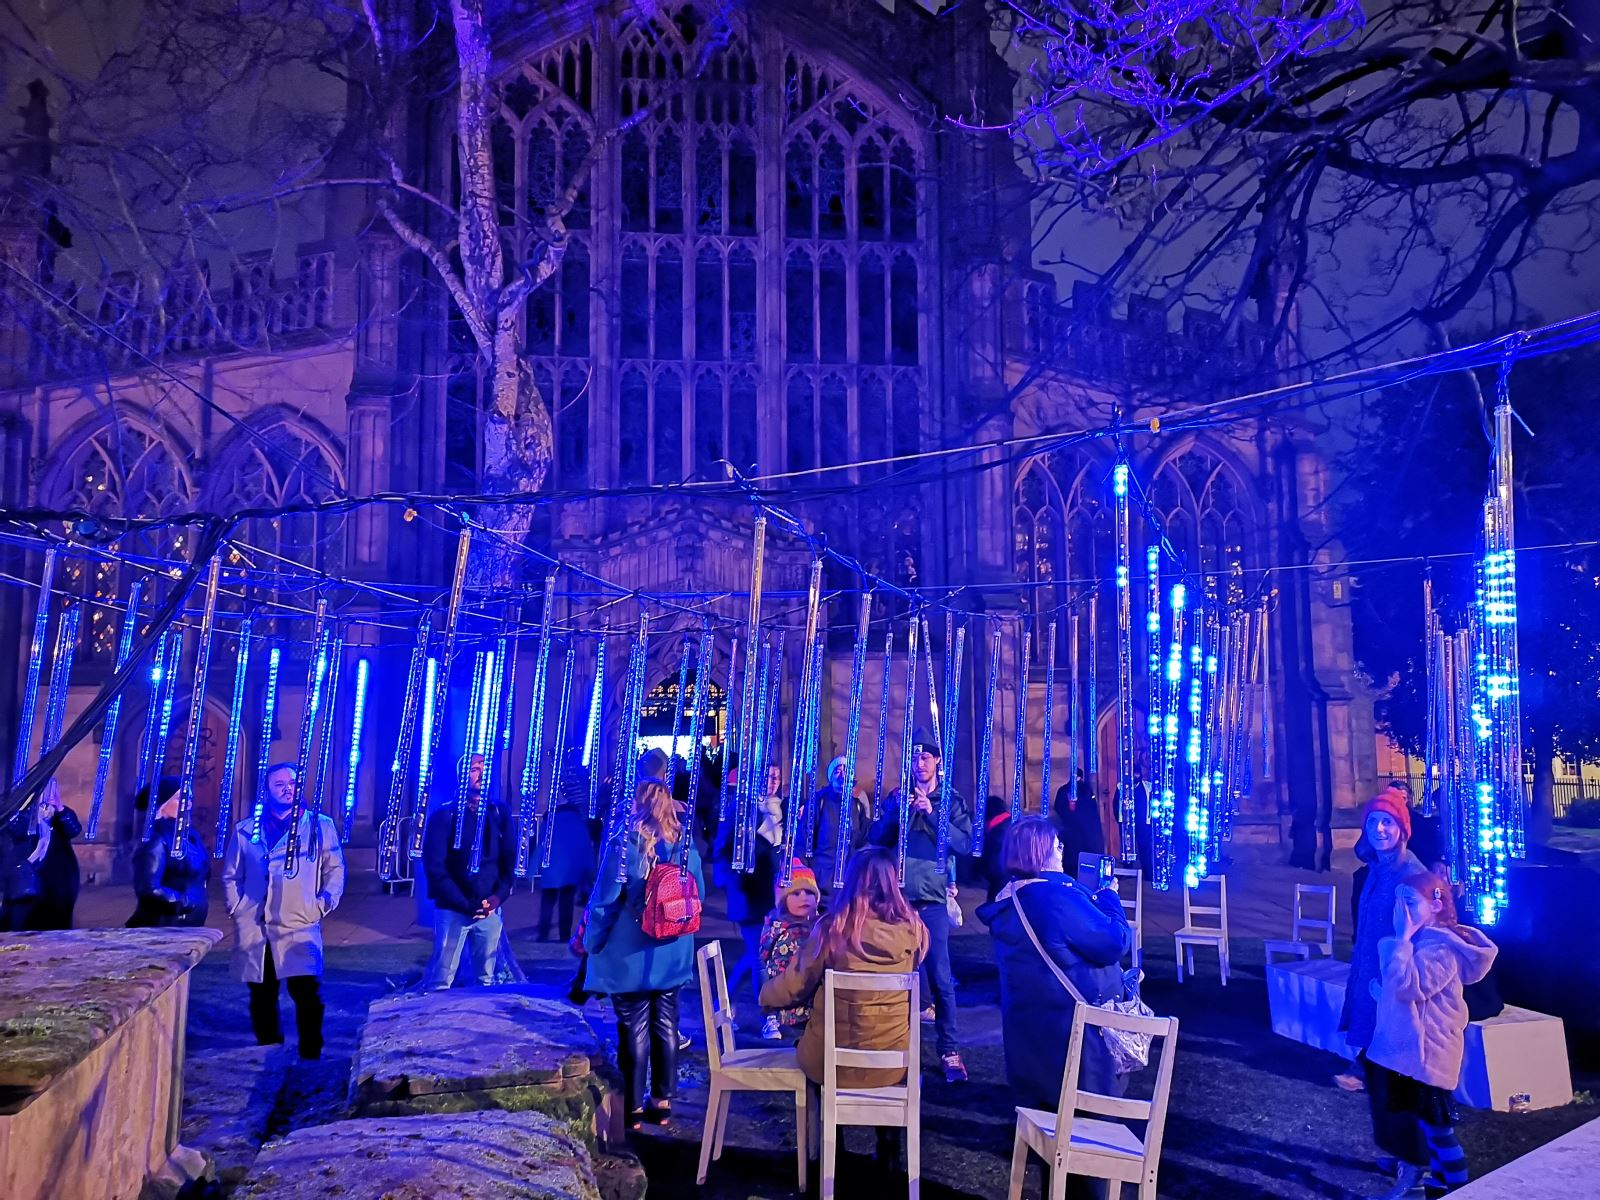 Saint Mary's Churchyard on Light Night 2020 - Claire Jones | Visit Nottinghamshire